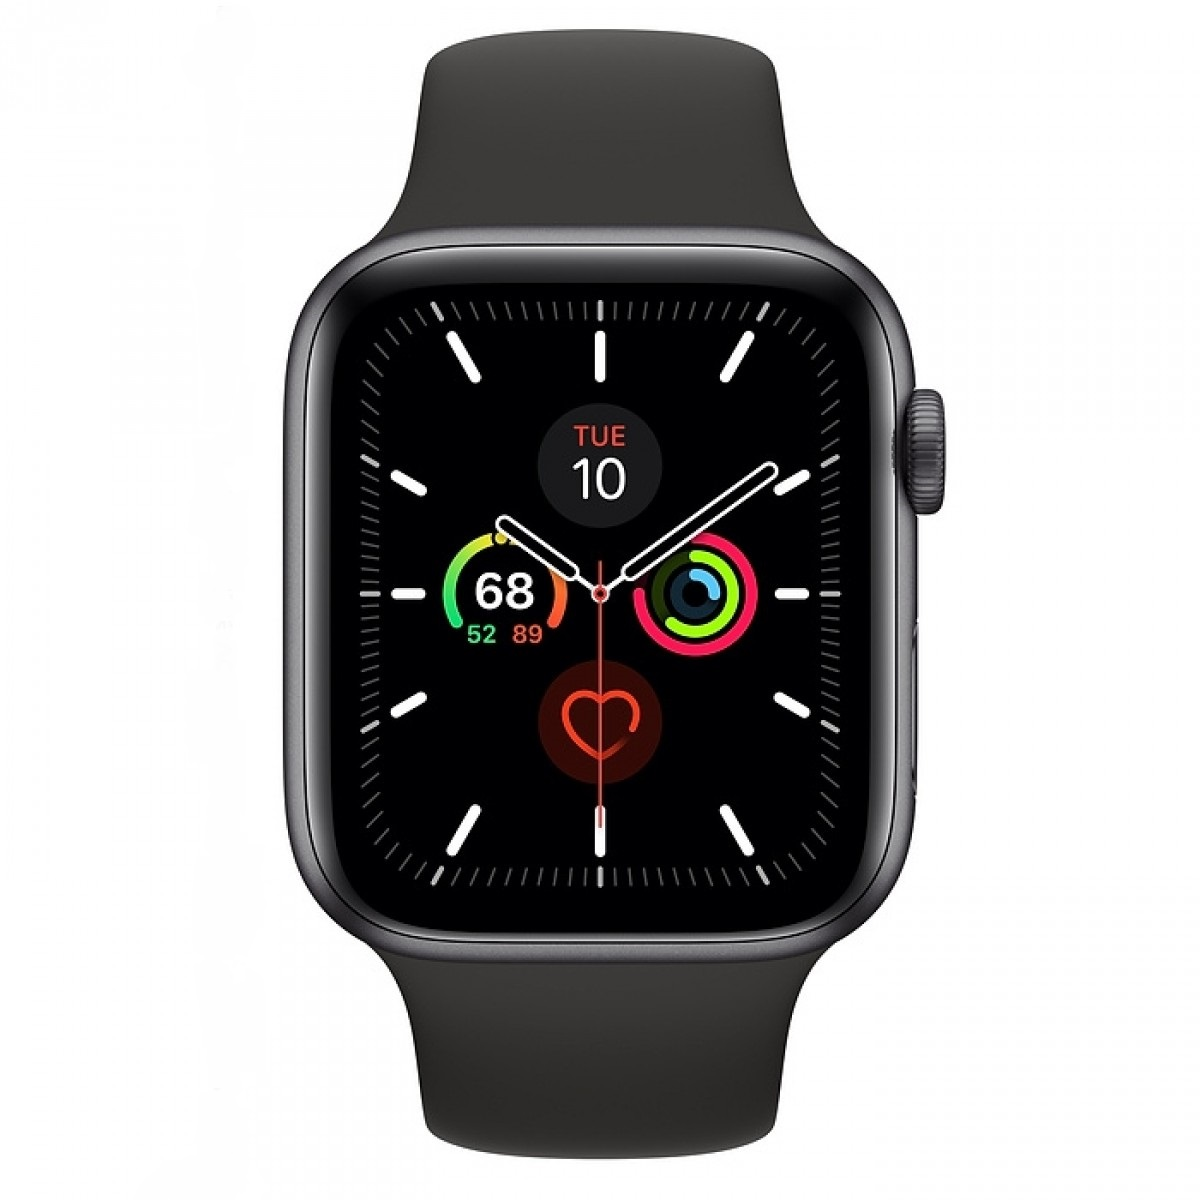 Quick! Win This Brand New Stylish Apple Watch!